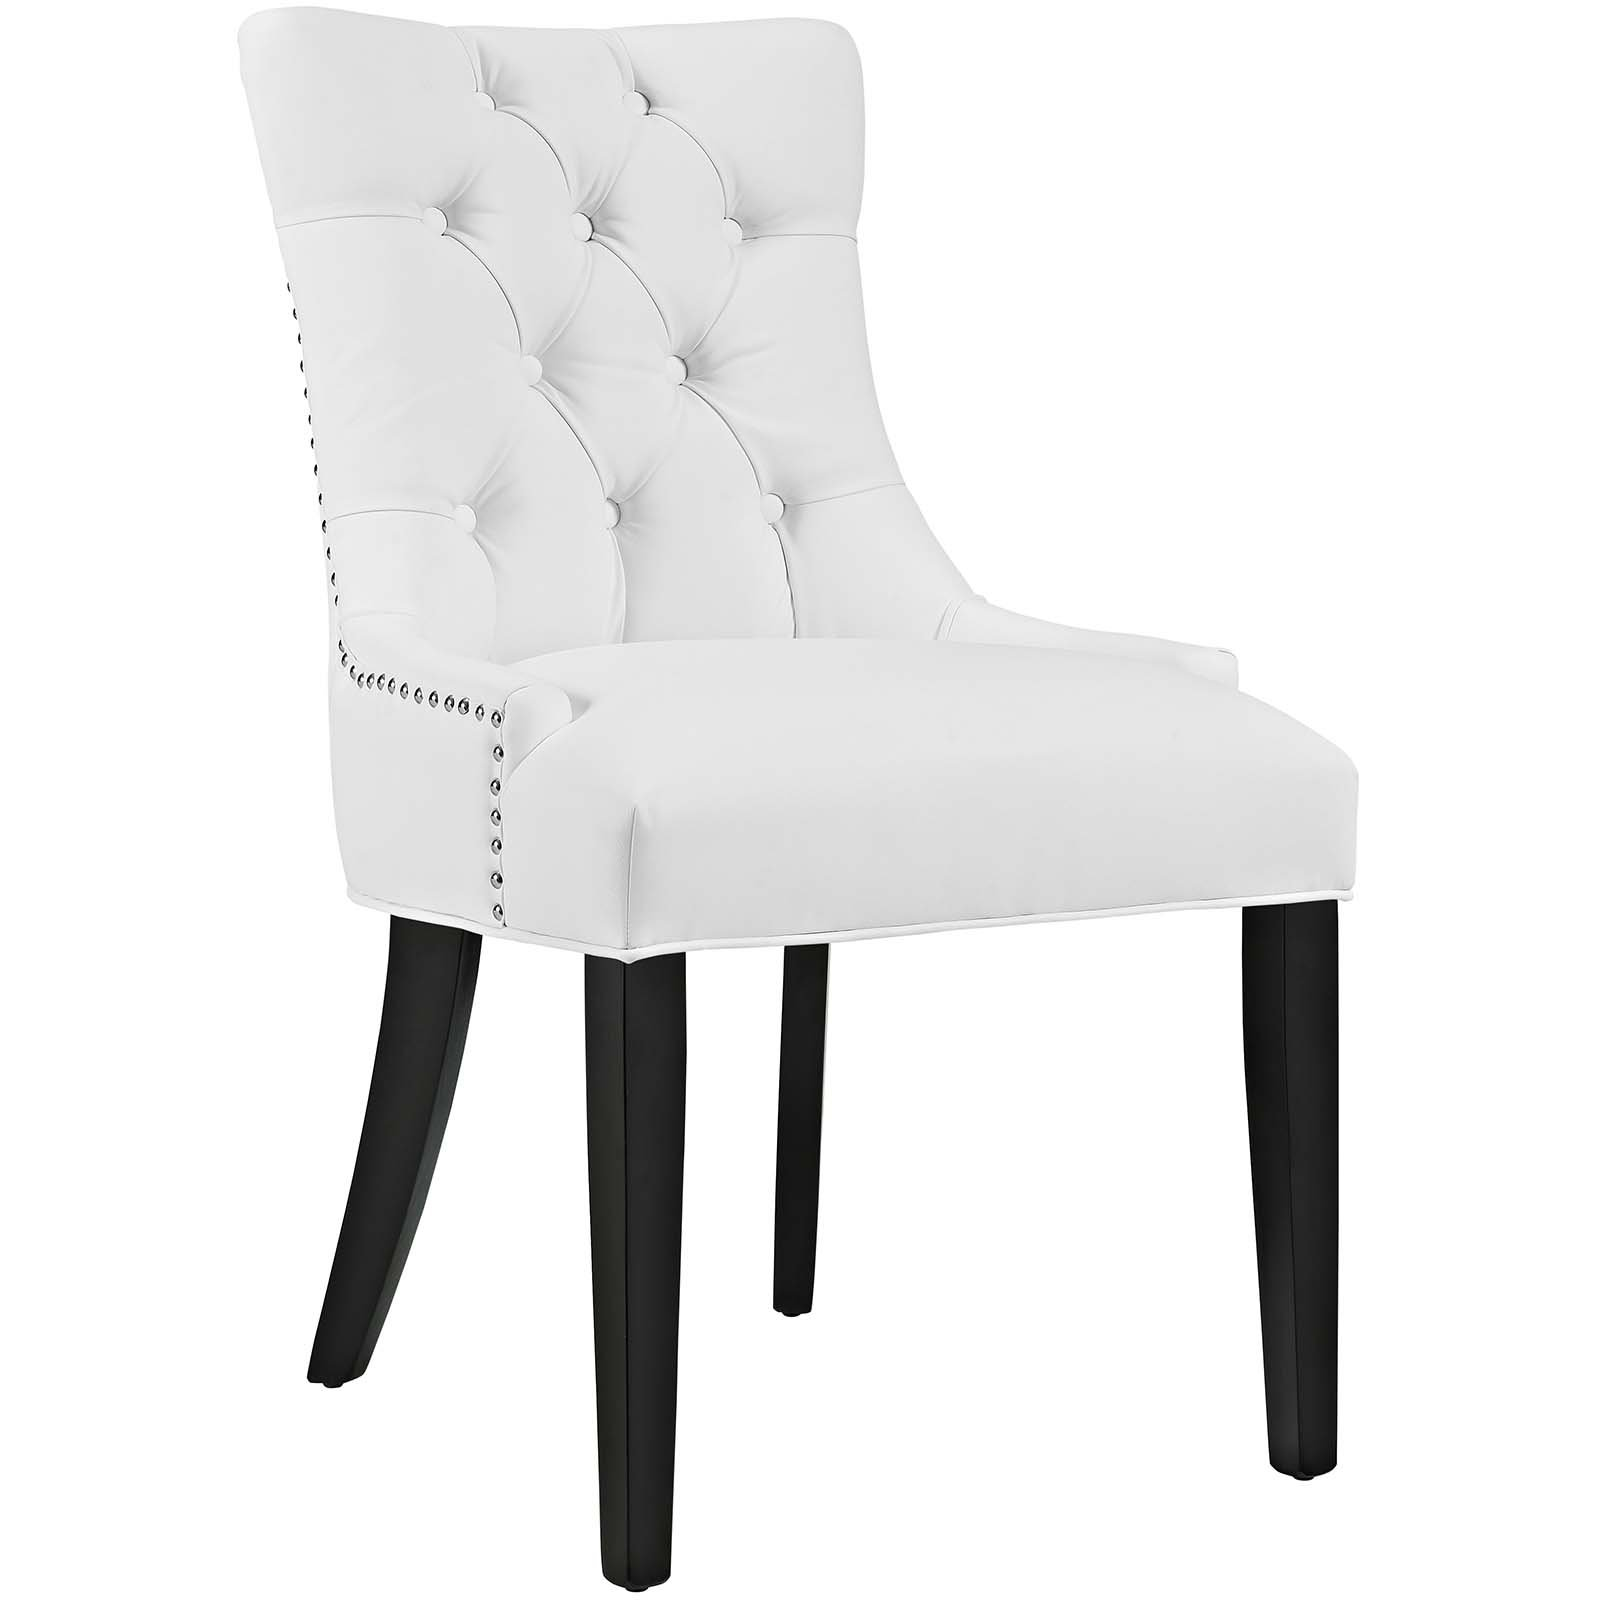 Modway Regent Modern Elegant Button-Tufted Upholstered Vinyl Dining Side Chair With Nailhead Trim in White by Modway